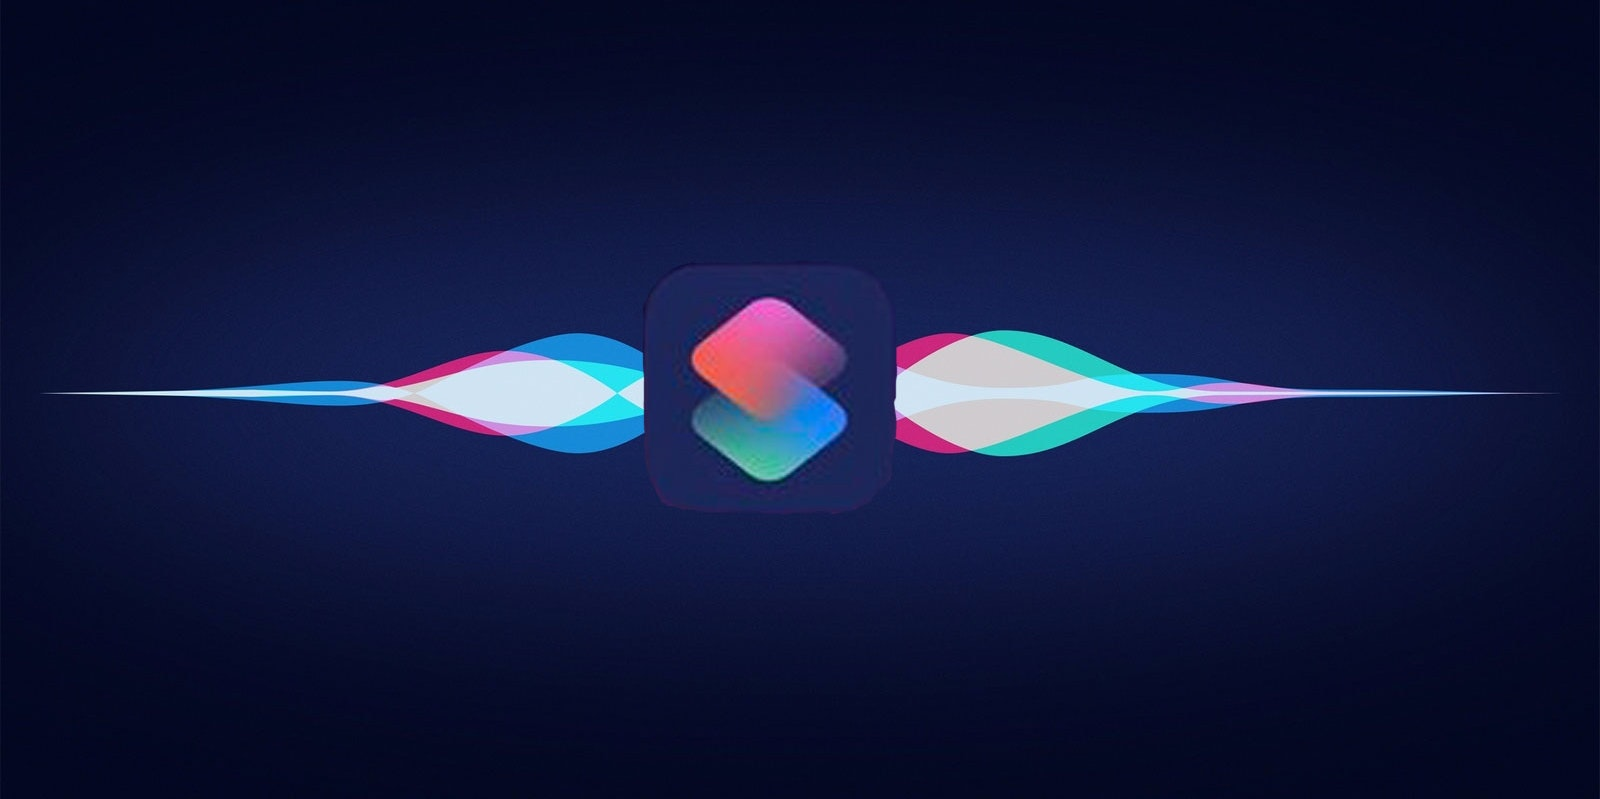 How to Make Your Own Siri Voice Commands With iOS 12 Shortcuts